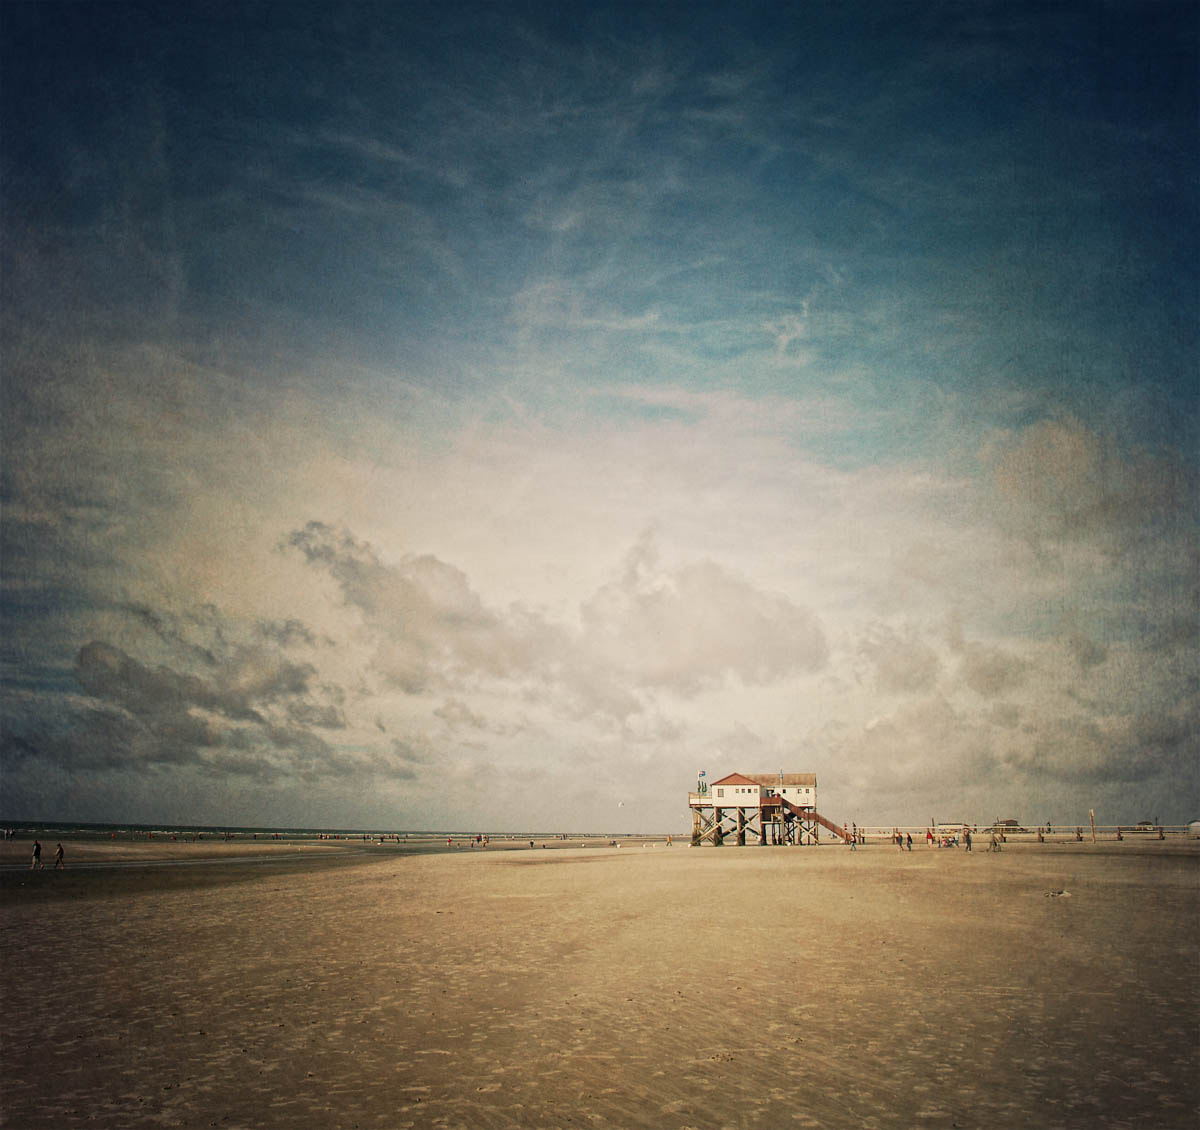 Photograph A day at the beach by Andrea Kamal on 500px